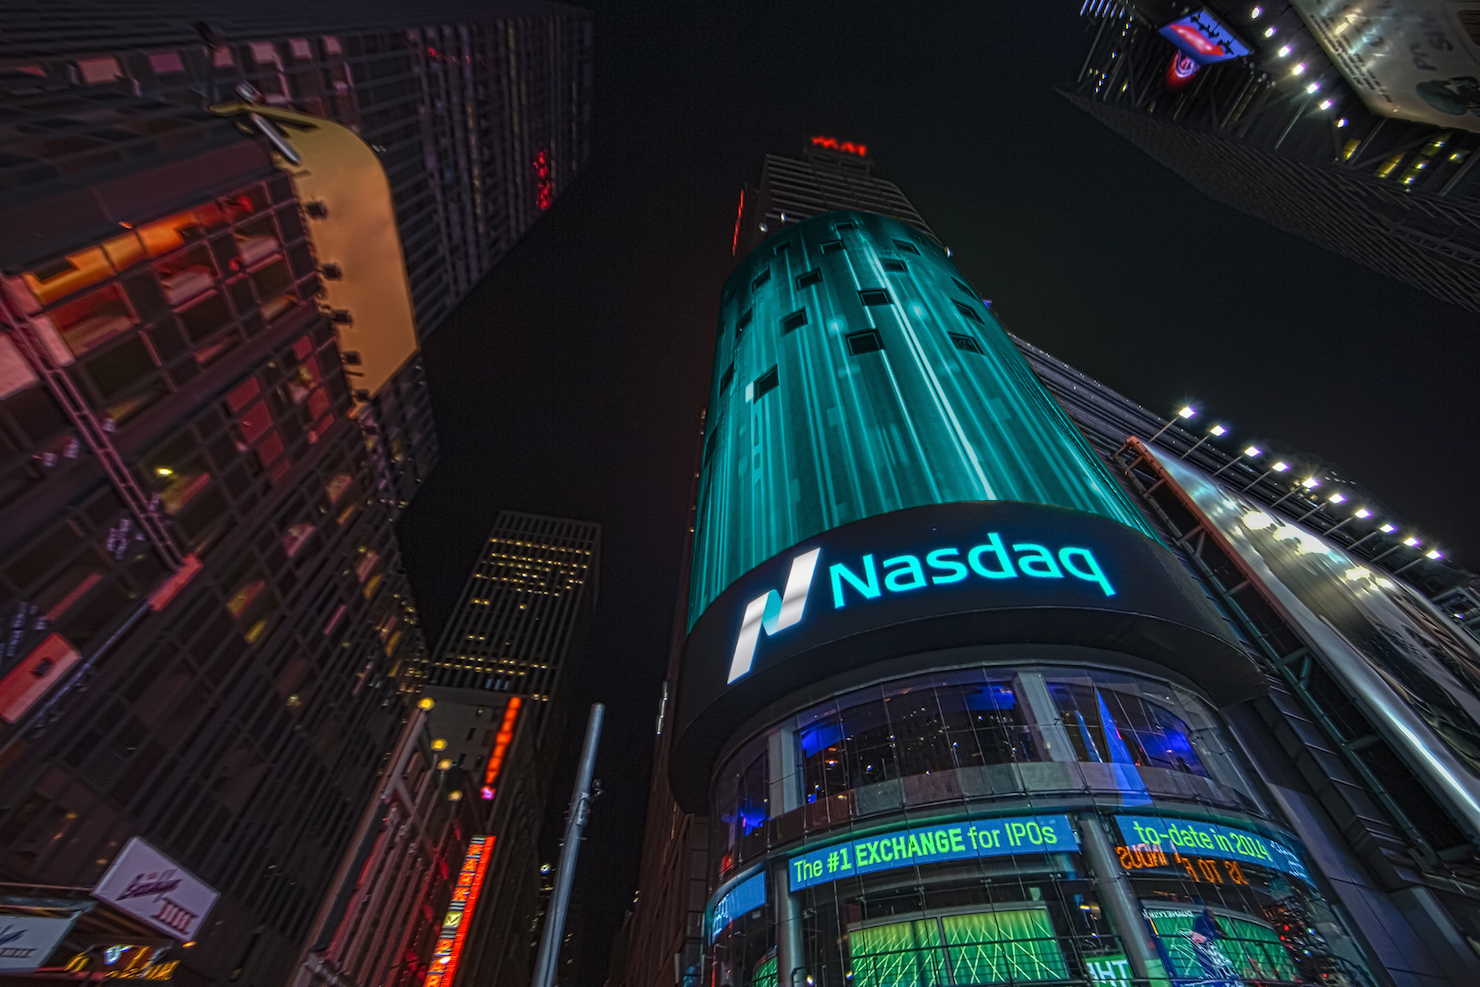 Nasdaq Tower Nasdaq (Used with Permission Copyright 2014 NASDAQ OMX Group)